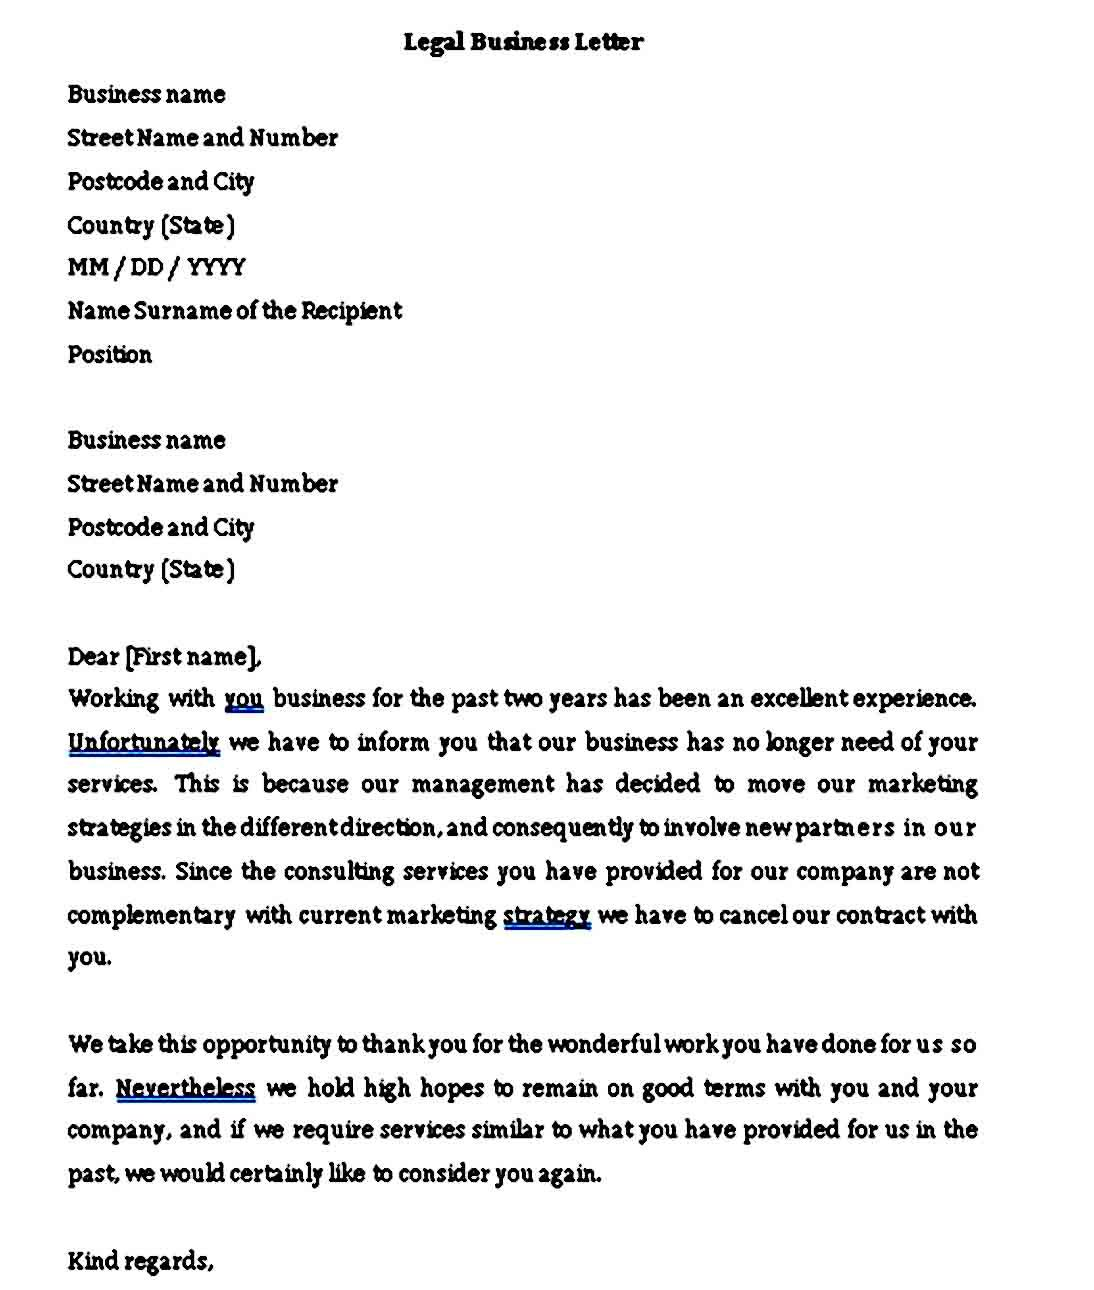 Legal Letter Formal Sample One page business plan, Legal